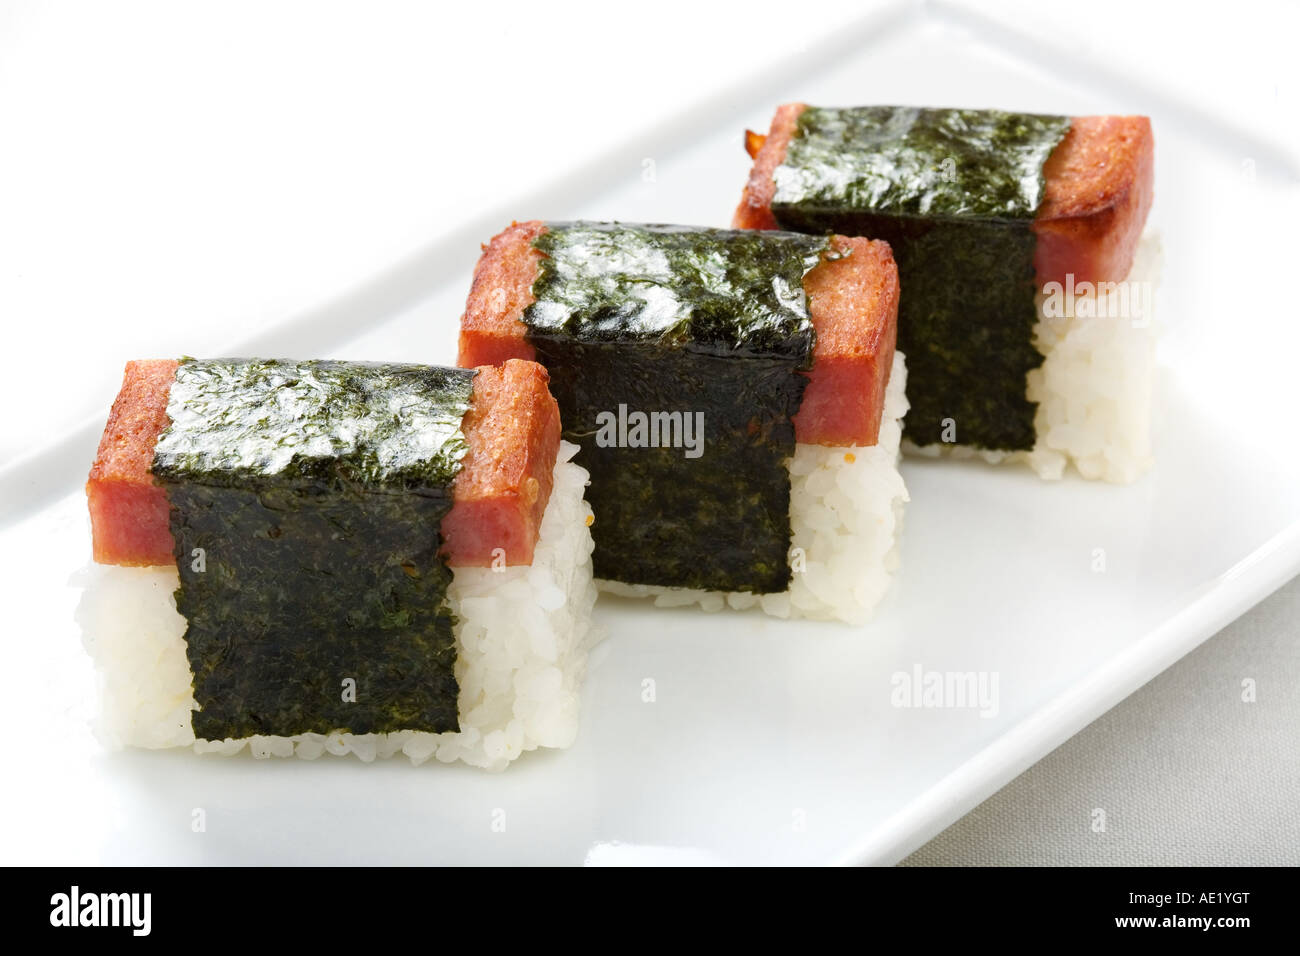 A Japanese dish on a plate consisting of three pieces of rice wraps. Stock Photo